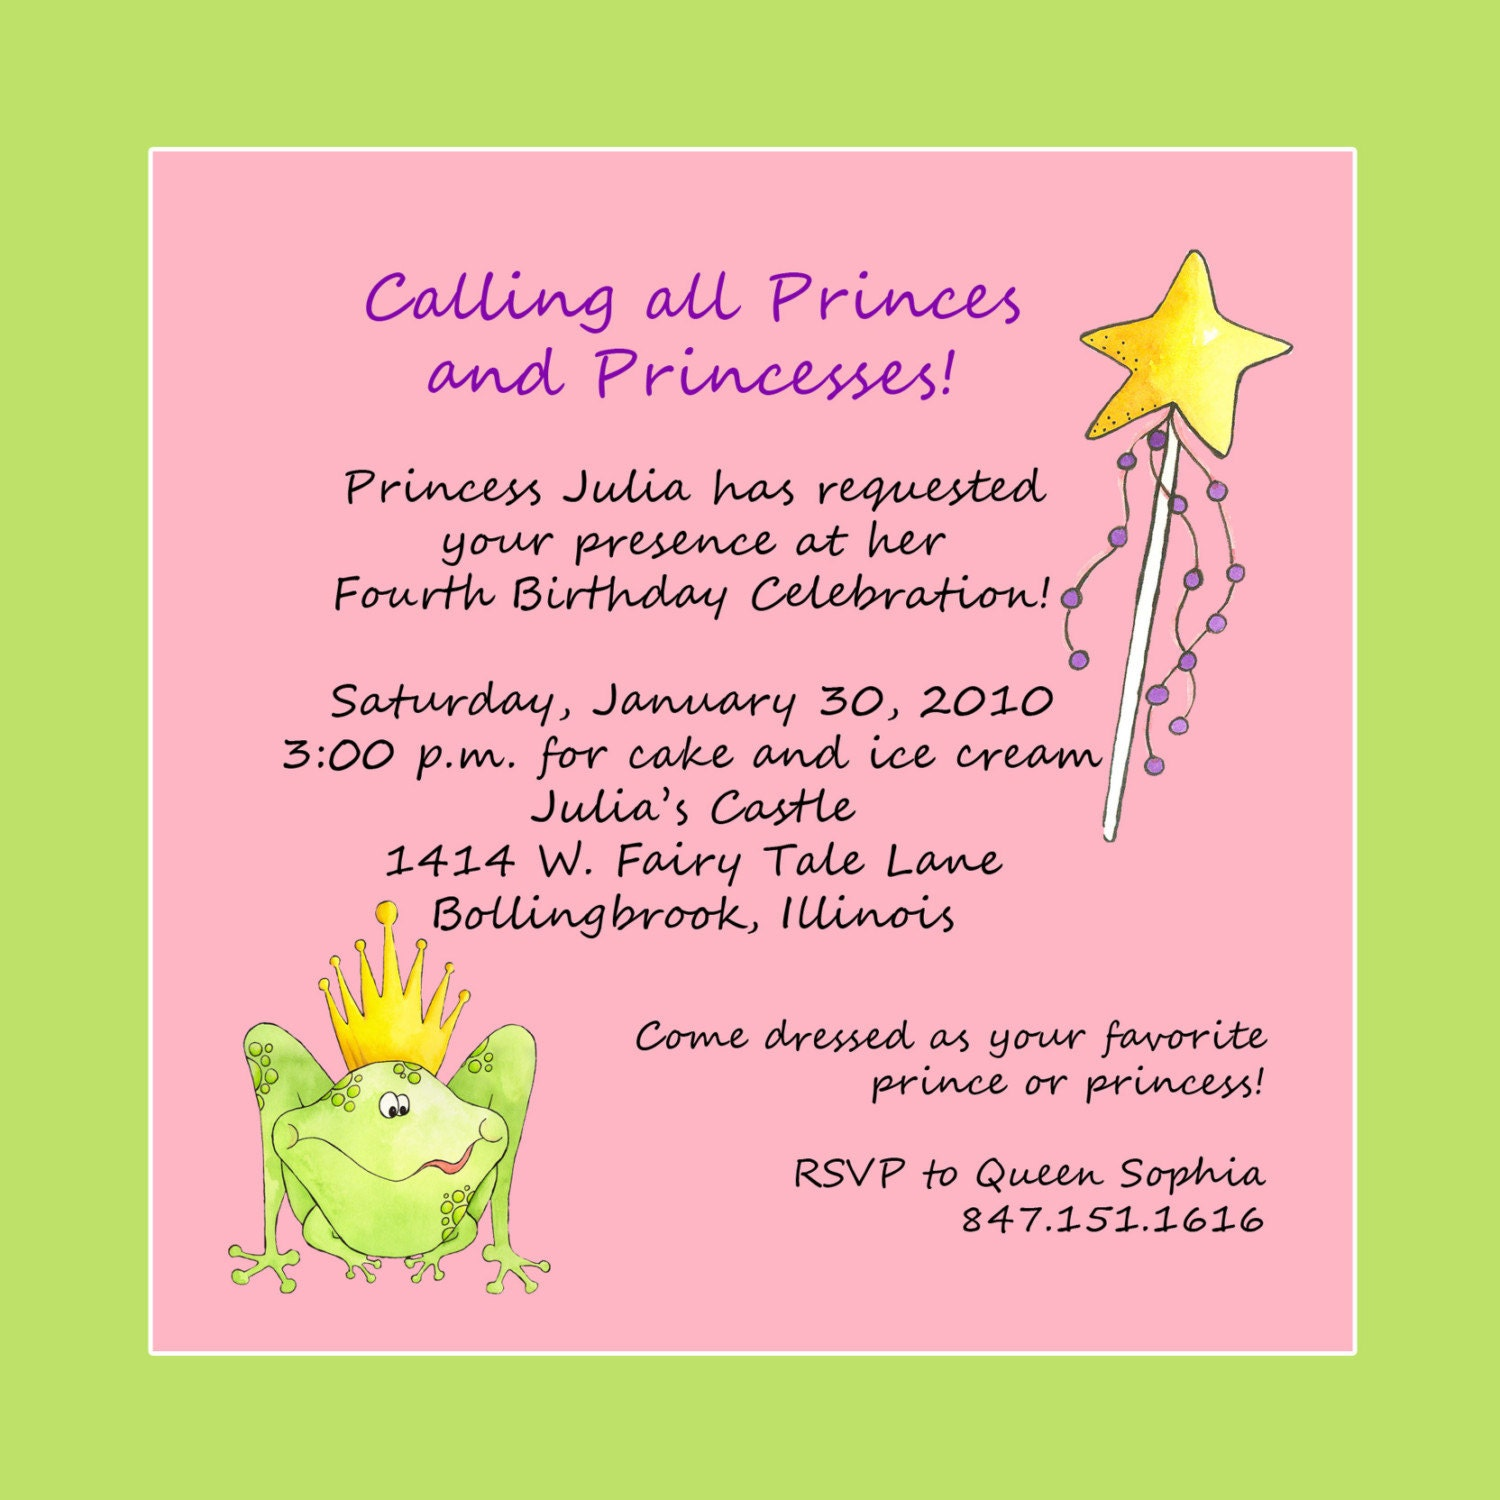 Birthday Quotes For Invitations: Princess Theme Birthday Party Invitation Custom Wording